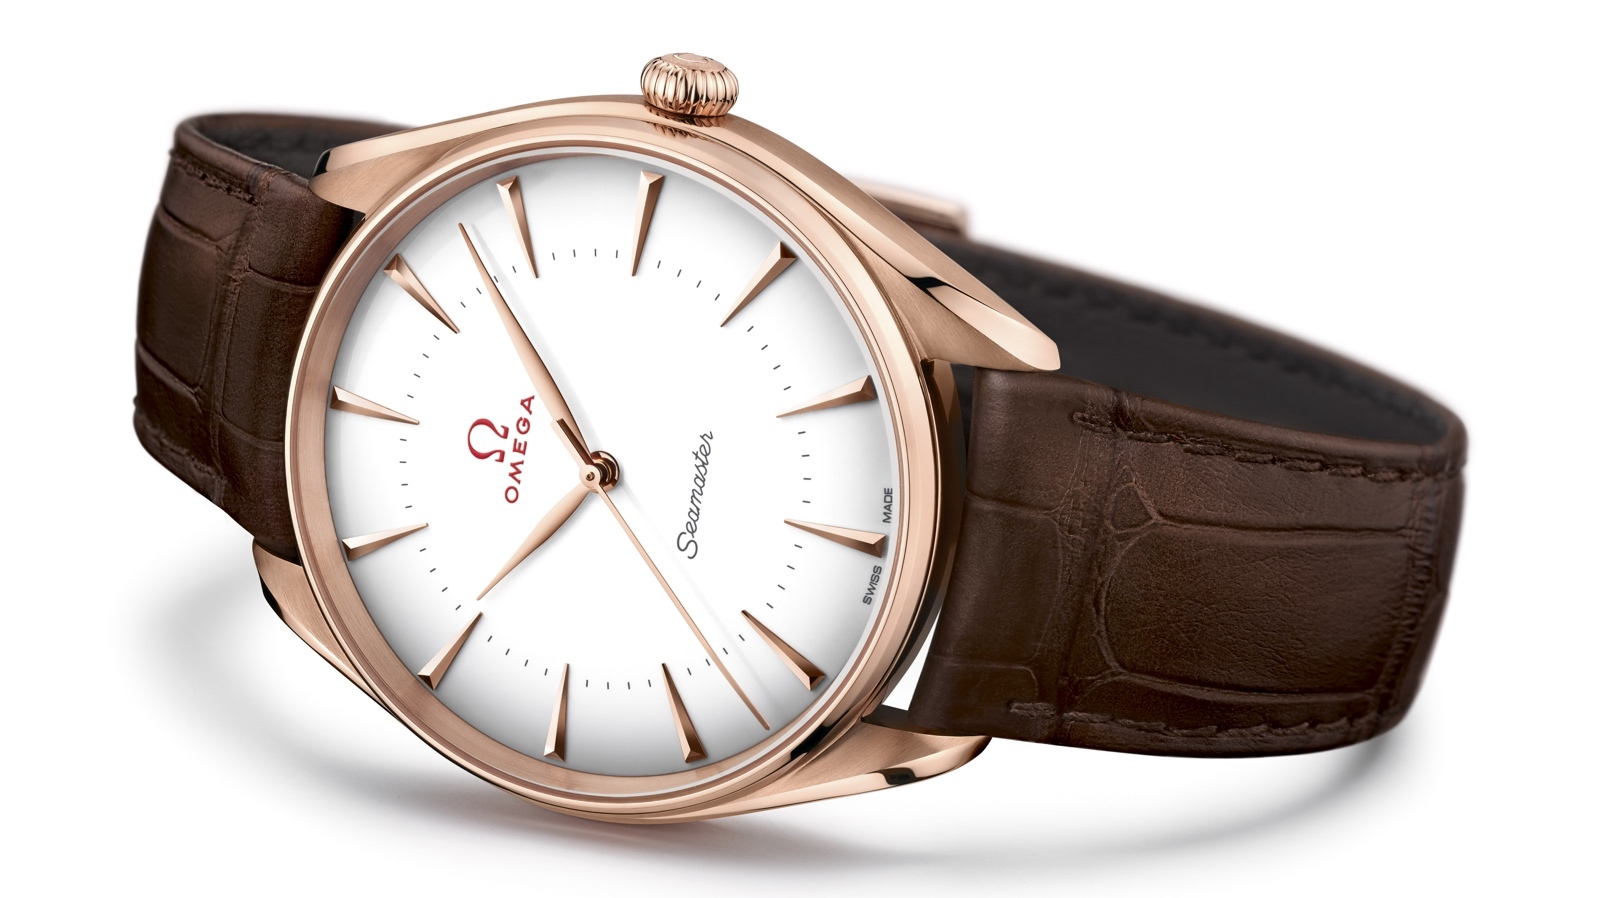 Omega Seamaster Olympic Games Gold Collection Sedna Gold